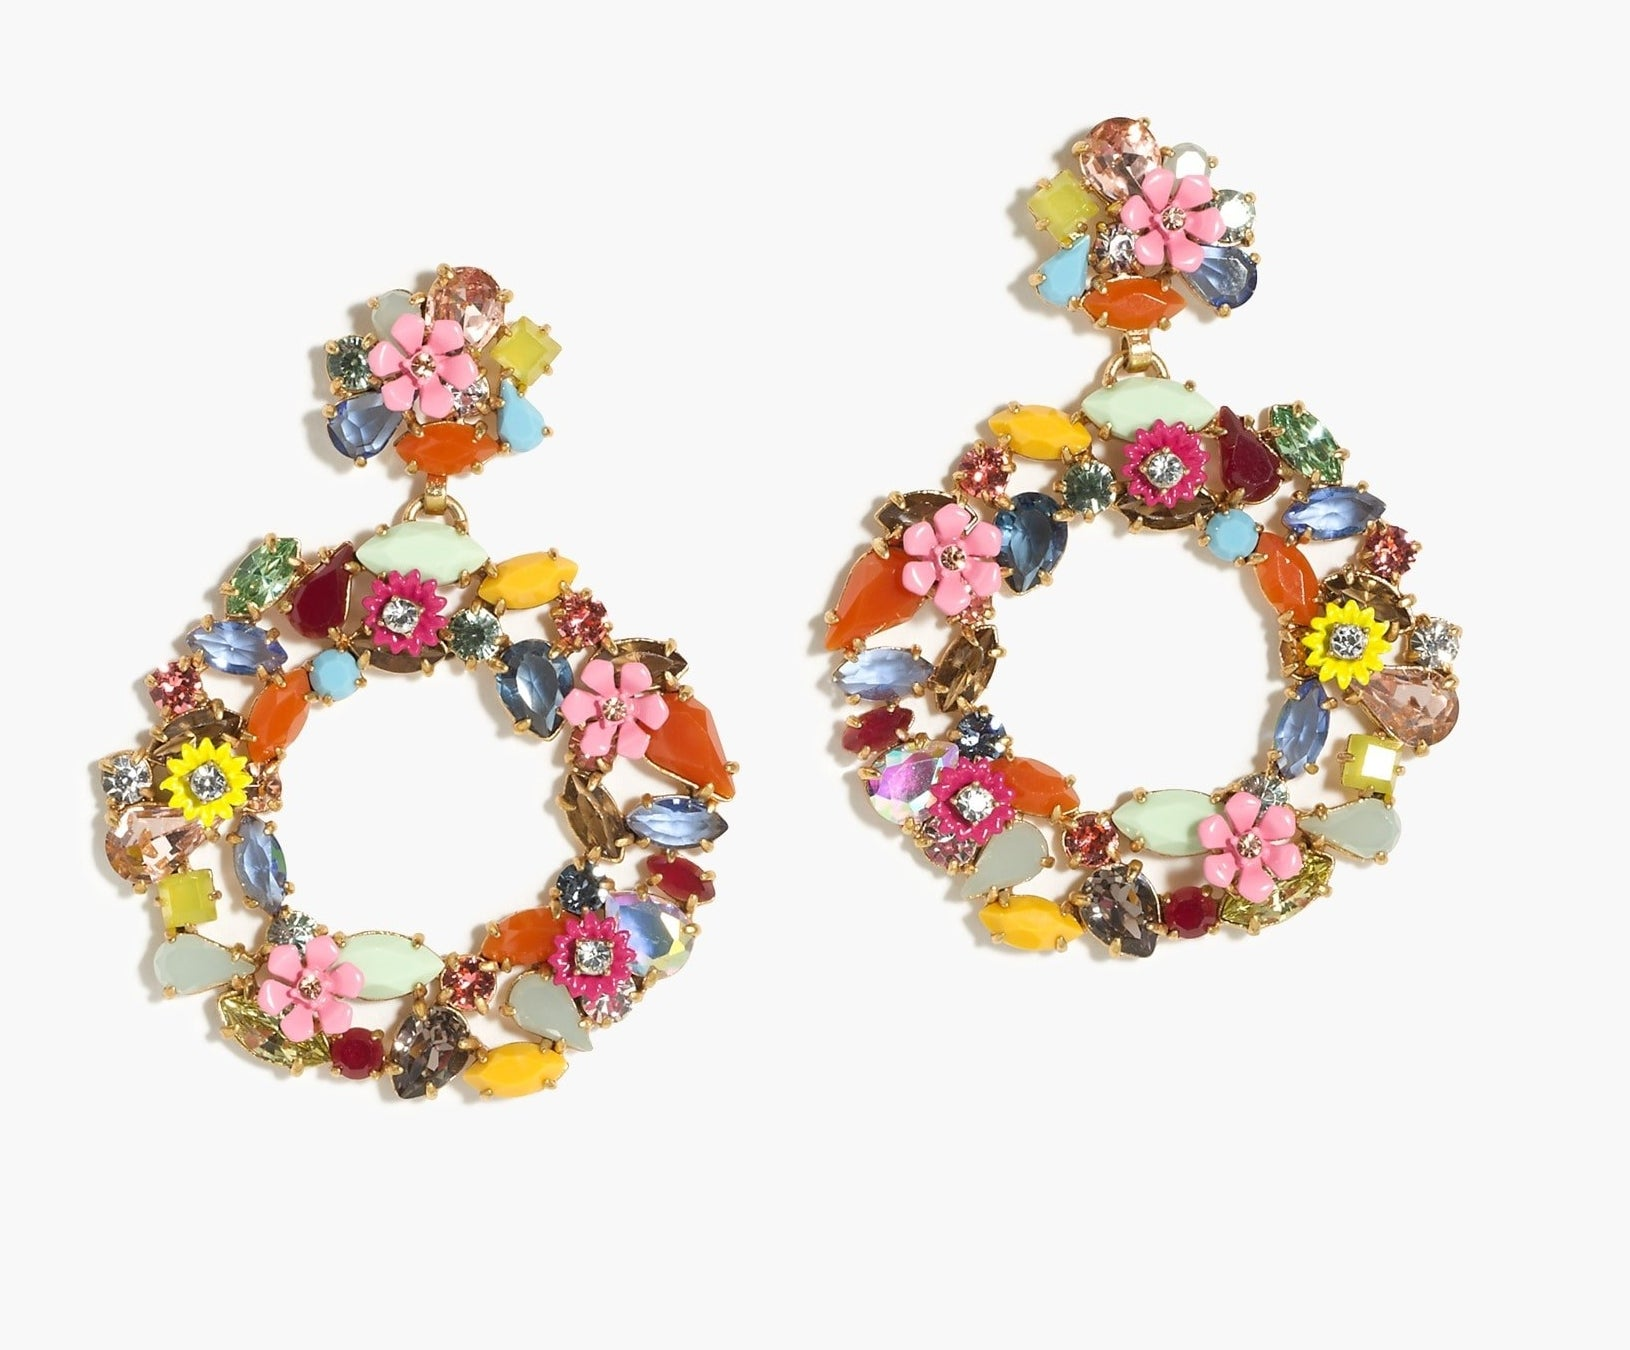 The earrings featuring colorful stones and gems